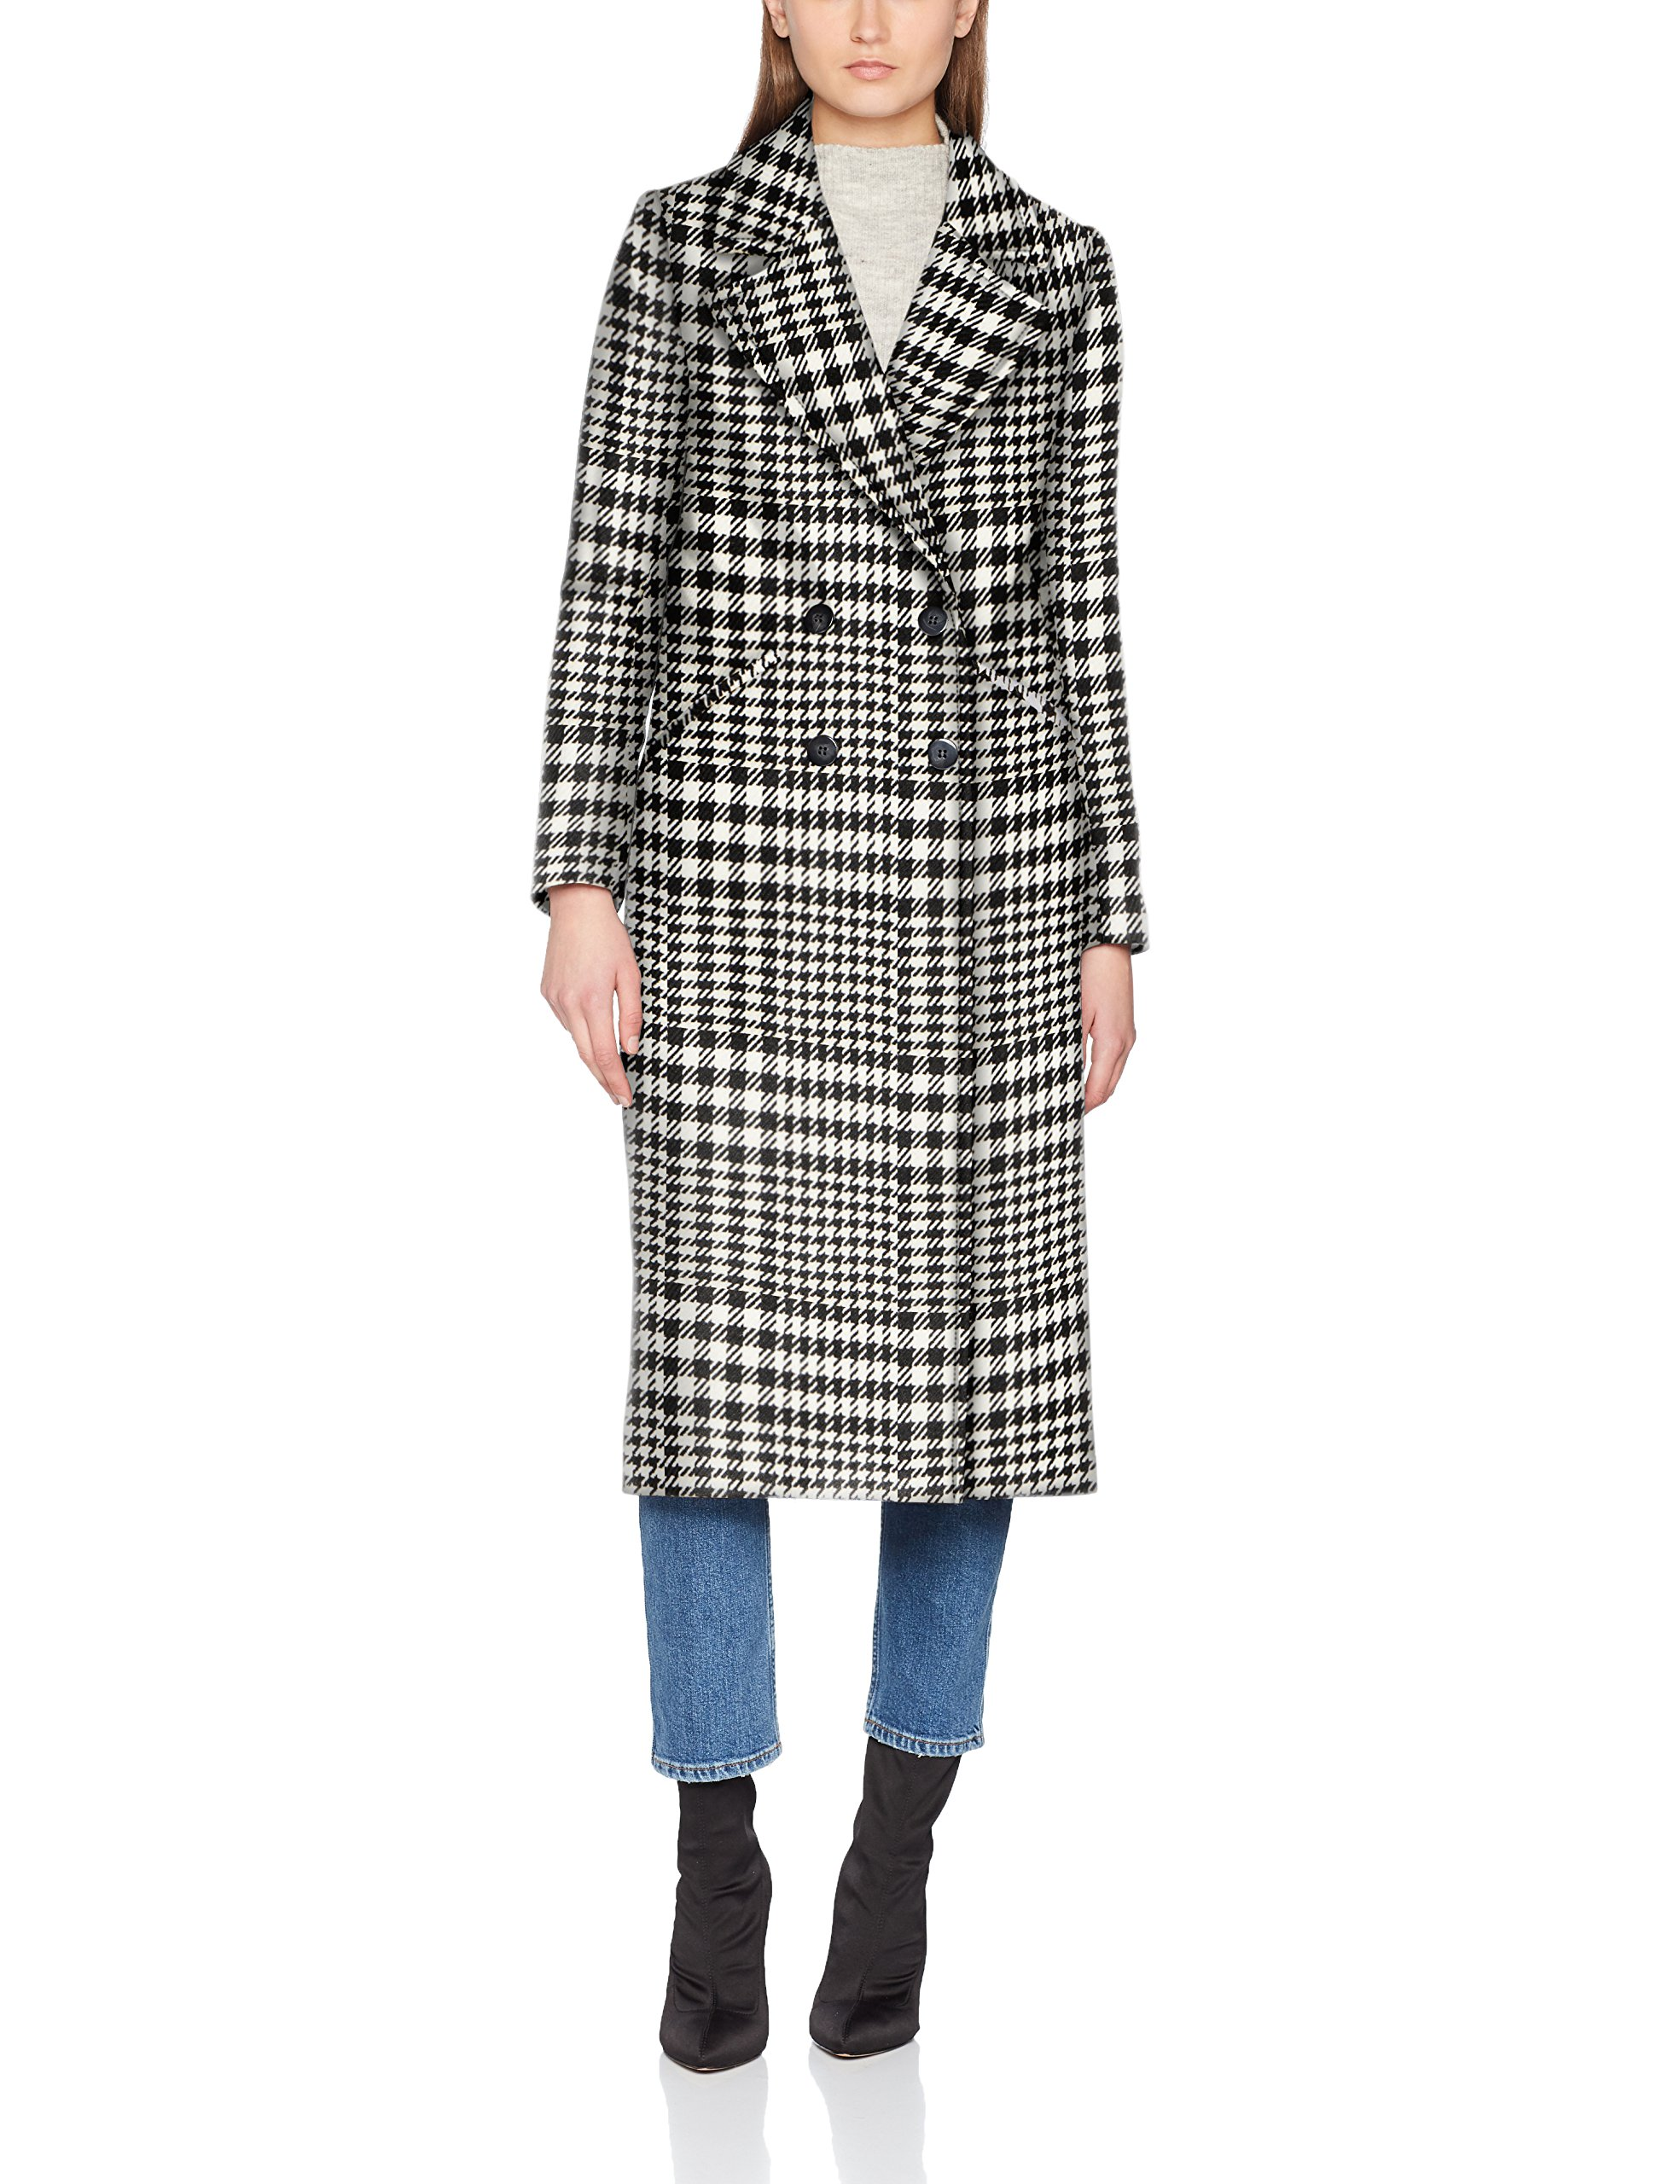 United Coat Fabricant44Femme Colors ManteauNoirblack Of 90140taille White Benetton rhCtdsQ